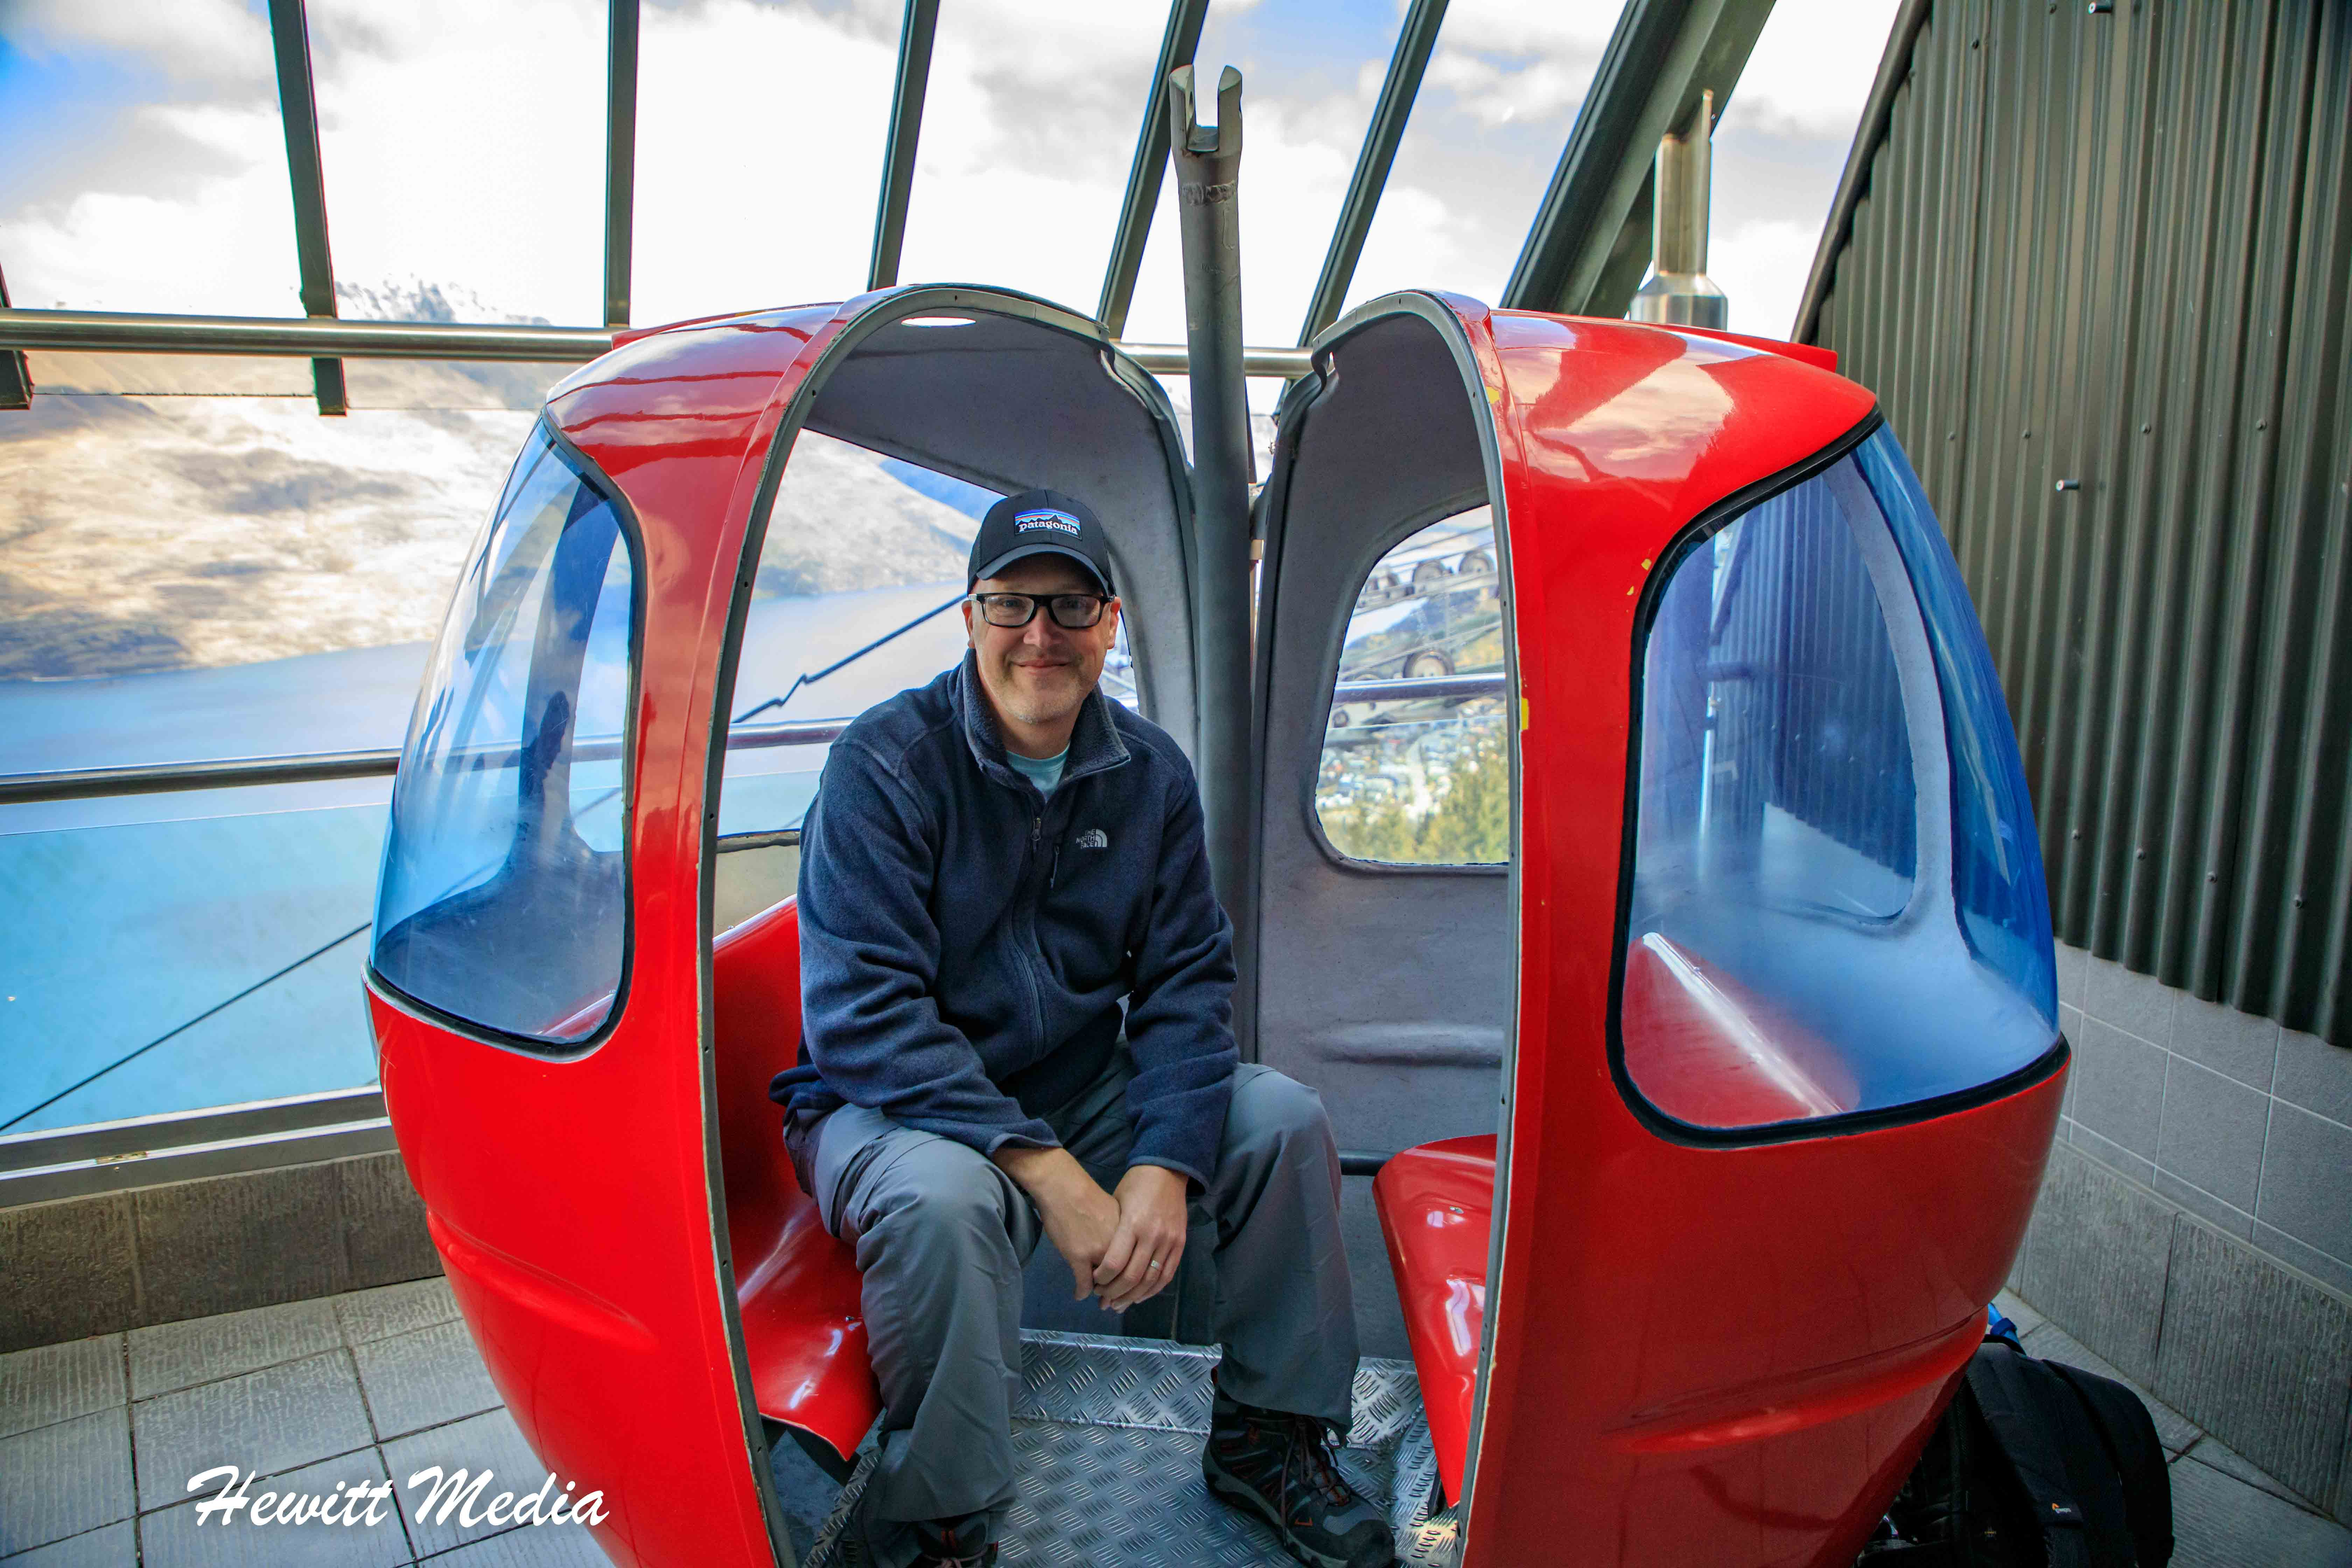 In a Gondola in the Queenstown from the Stratosfare Restaurant